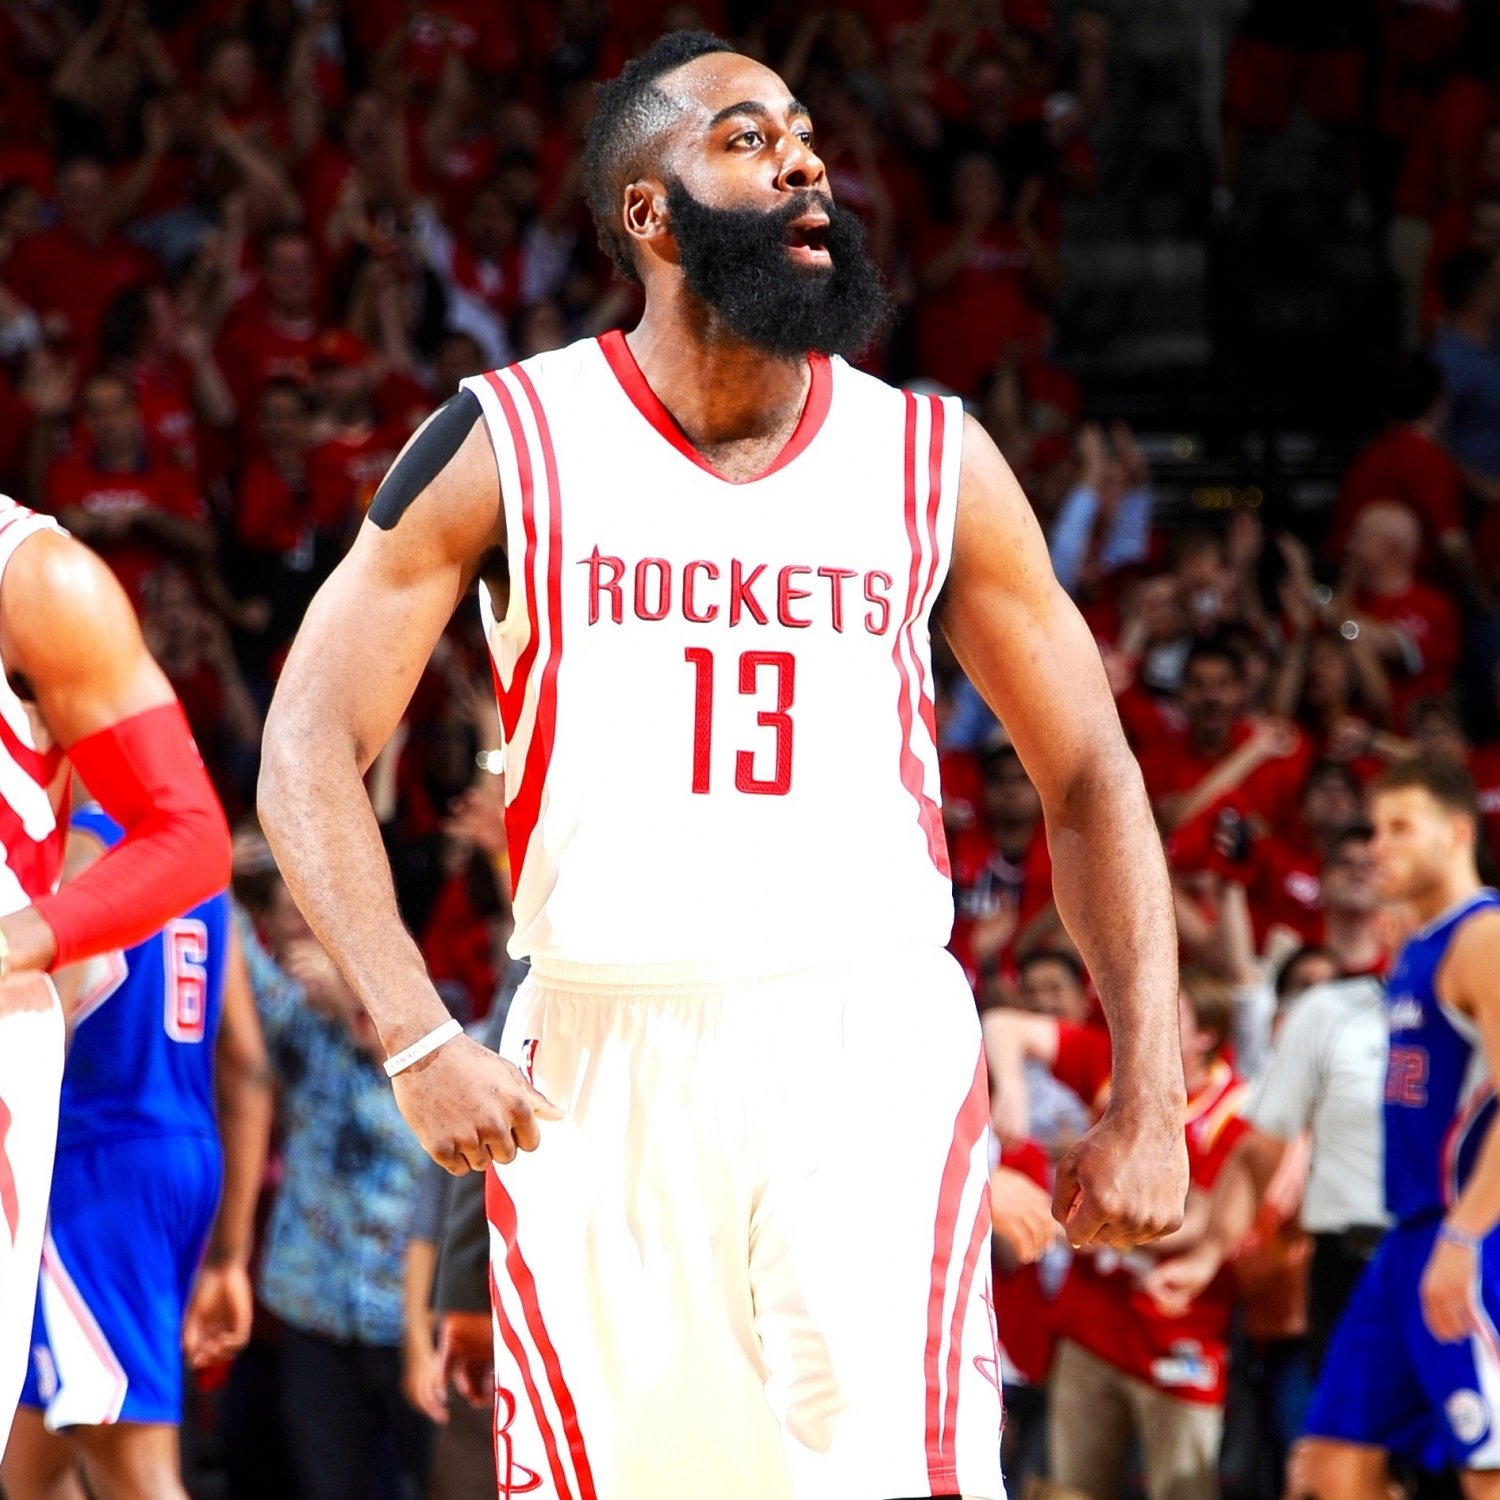 Houston Rockets Where To Watch The Upcoming Match Espn: Houston Rockets' Stars Shine To Avert Playoff Disaster Vs